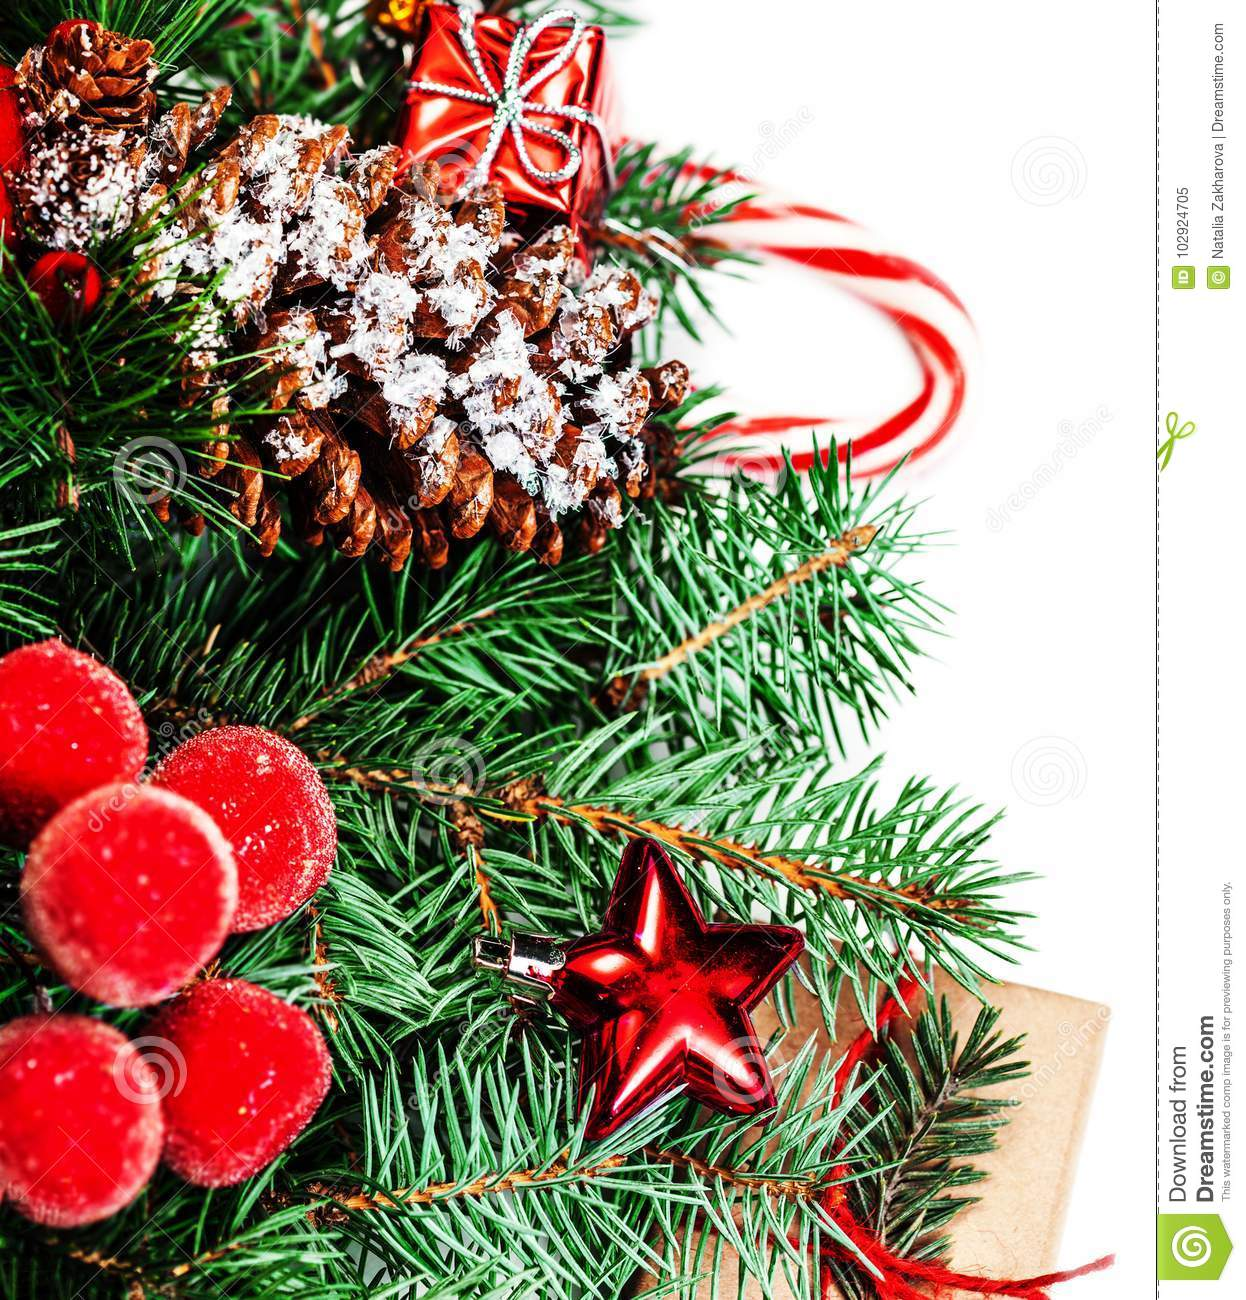 9011c6f97ad4 Christmas or New Year decorations background with pine cones, fir branches,  gift boxes, red berries and candy isolated on white background